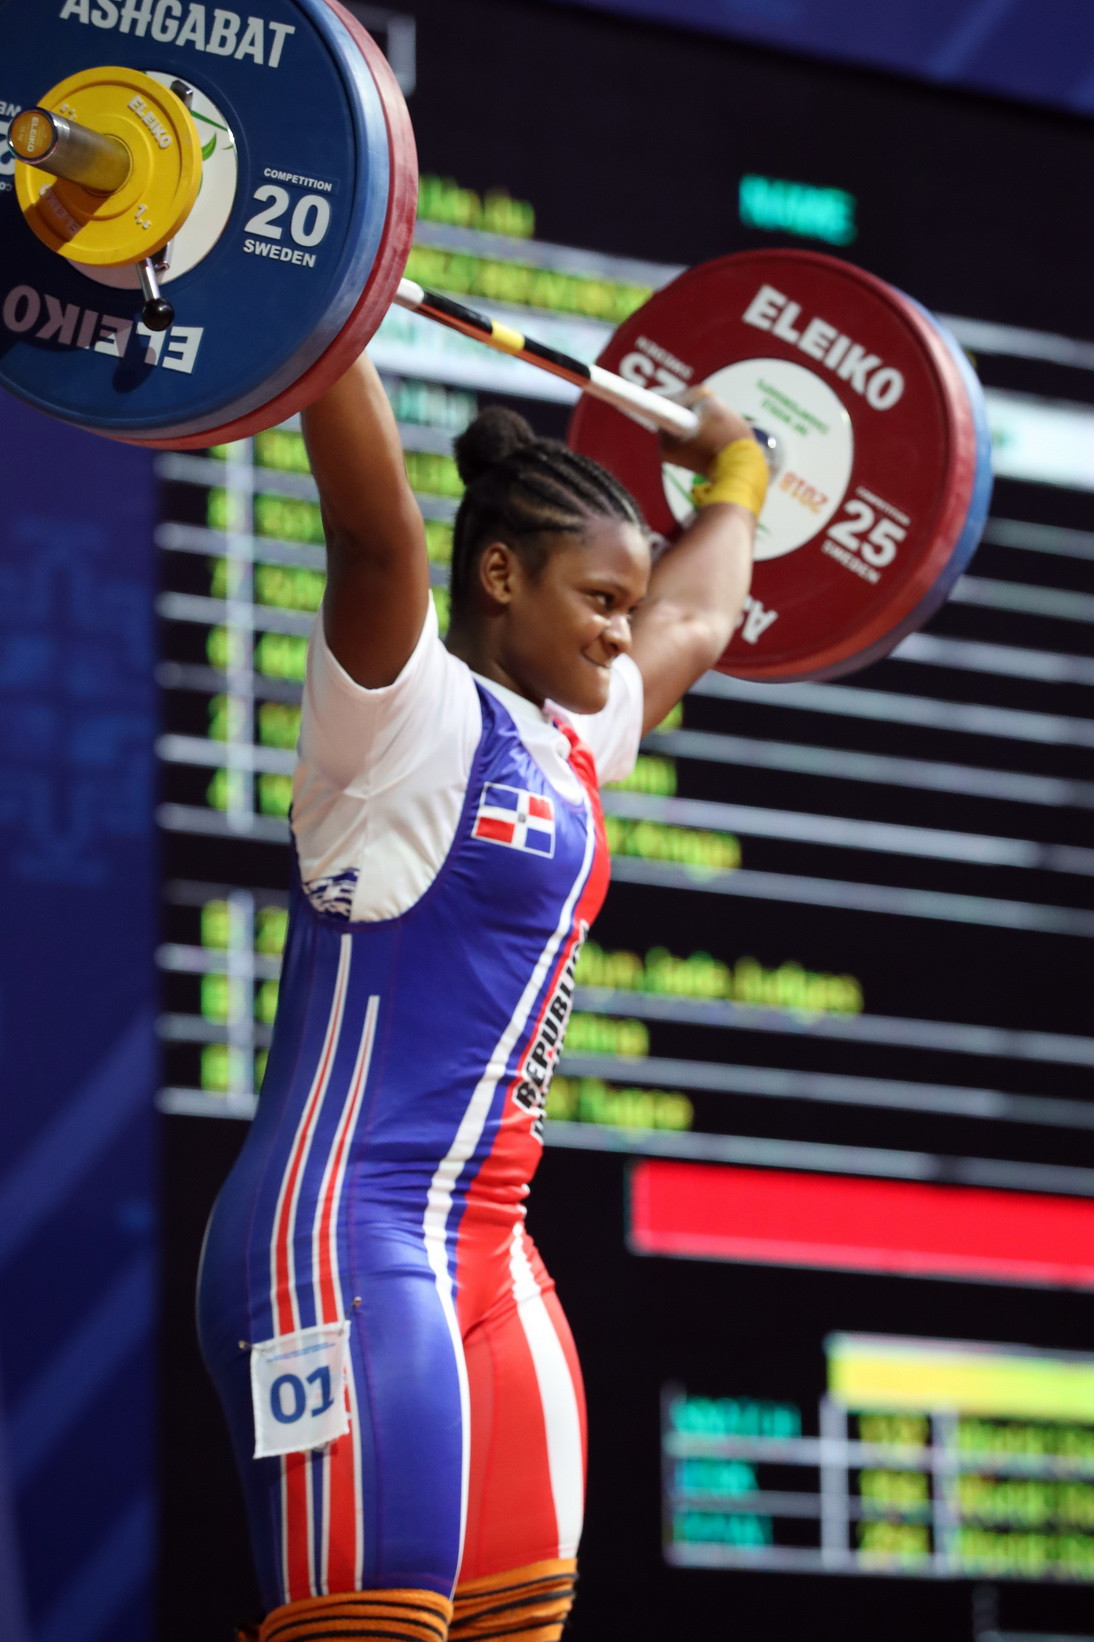 The Dominican Republic's Crismery Dominga Santana Peguero won the bronze medal in the total ©IWF